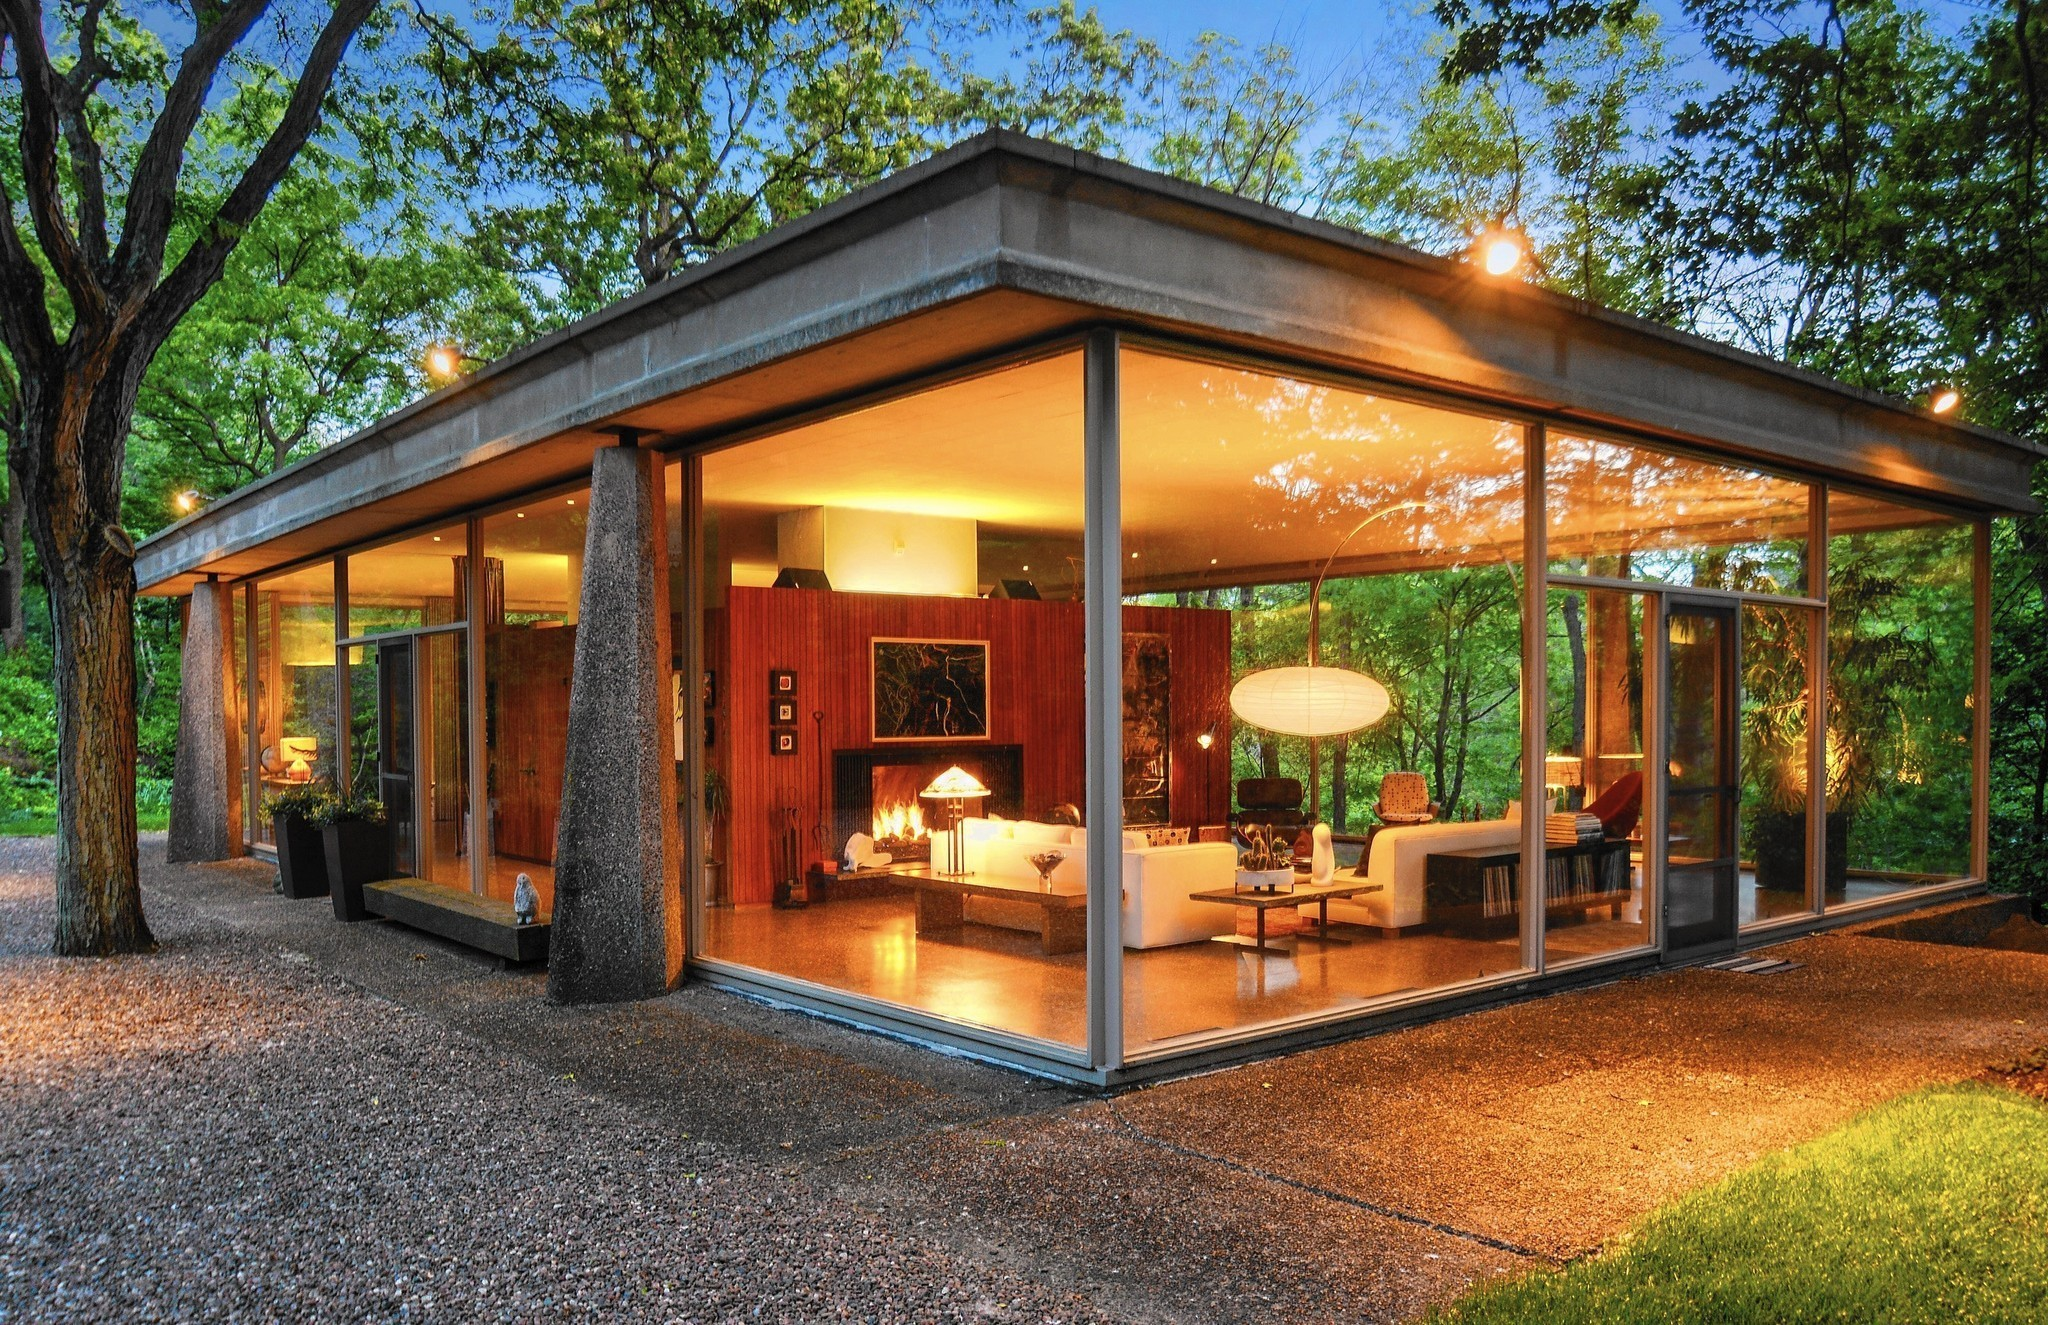 Van der rohe protege designed 39 glass house 39 for sale for Best windows for new home construction